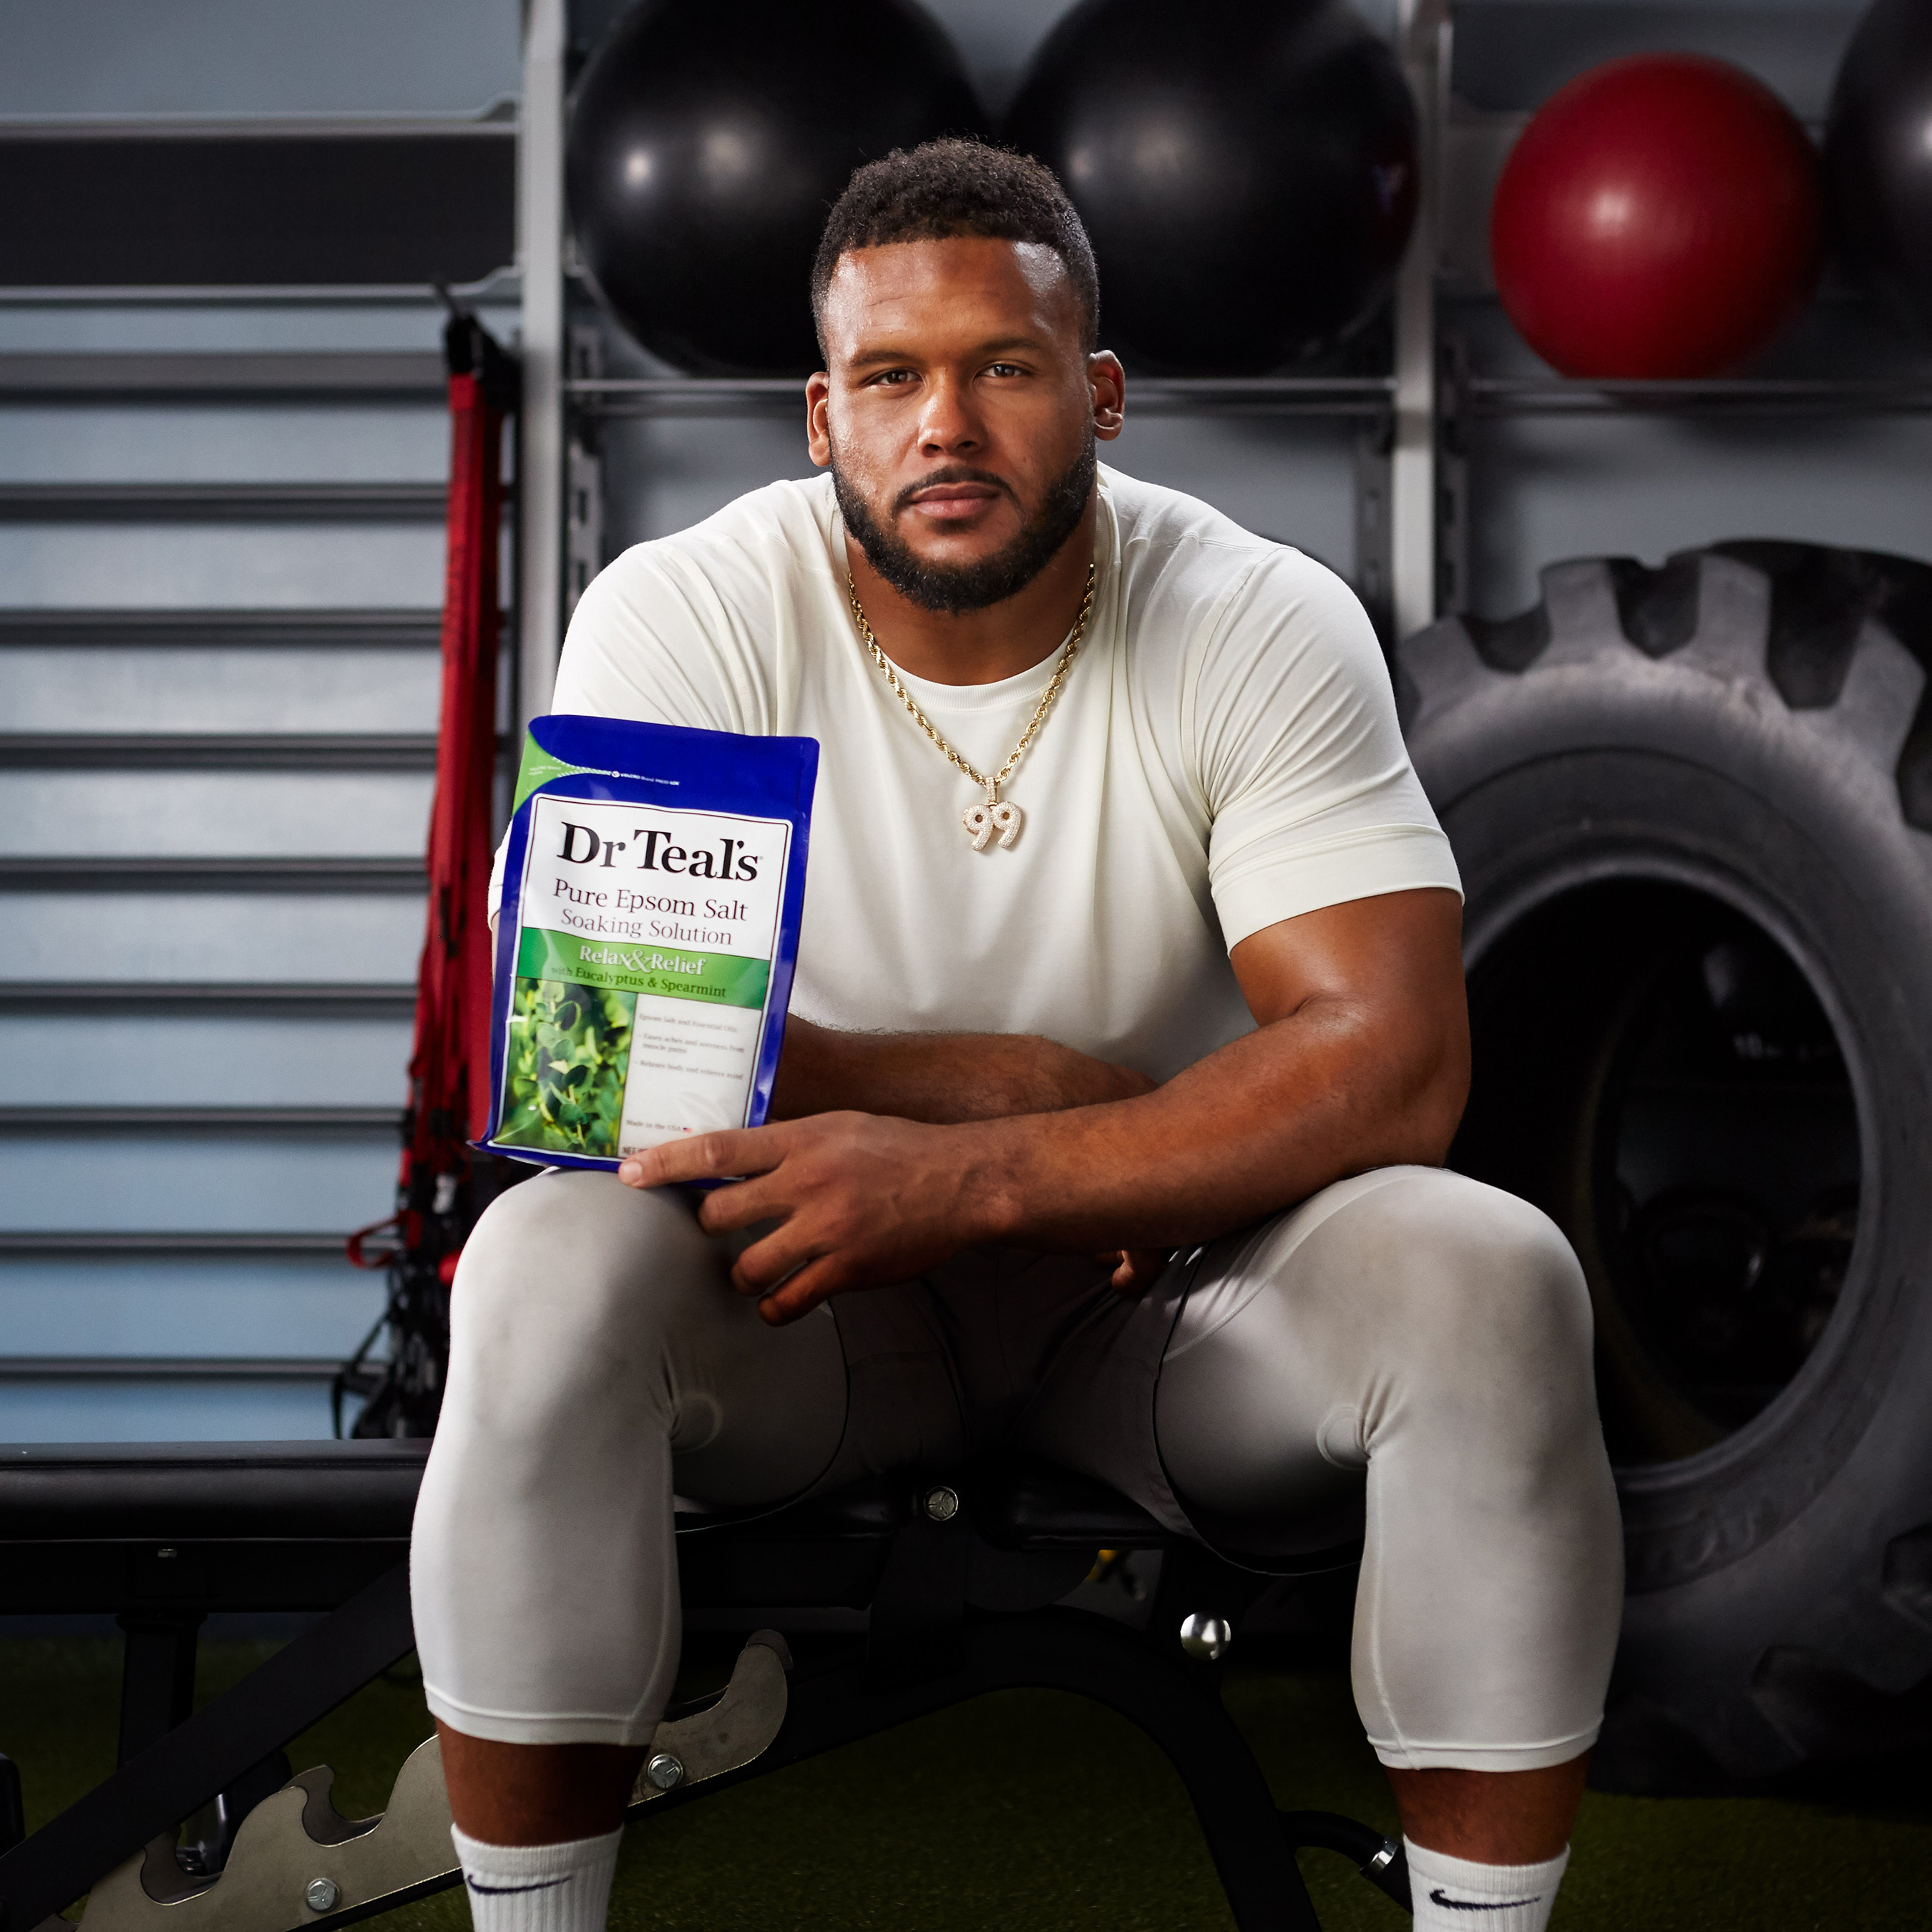 2X Defensive Player of the Year Aaron Donald